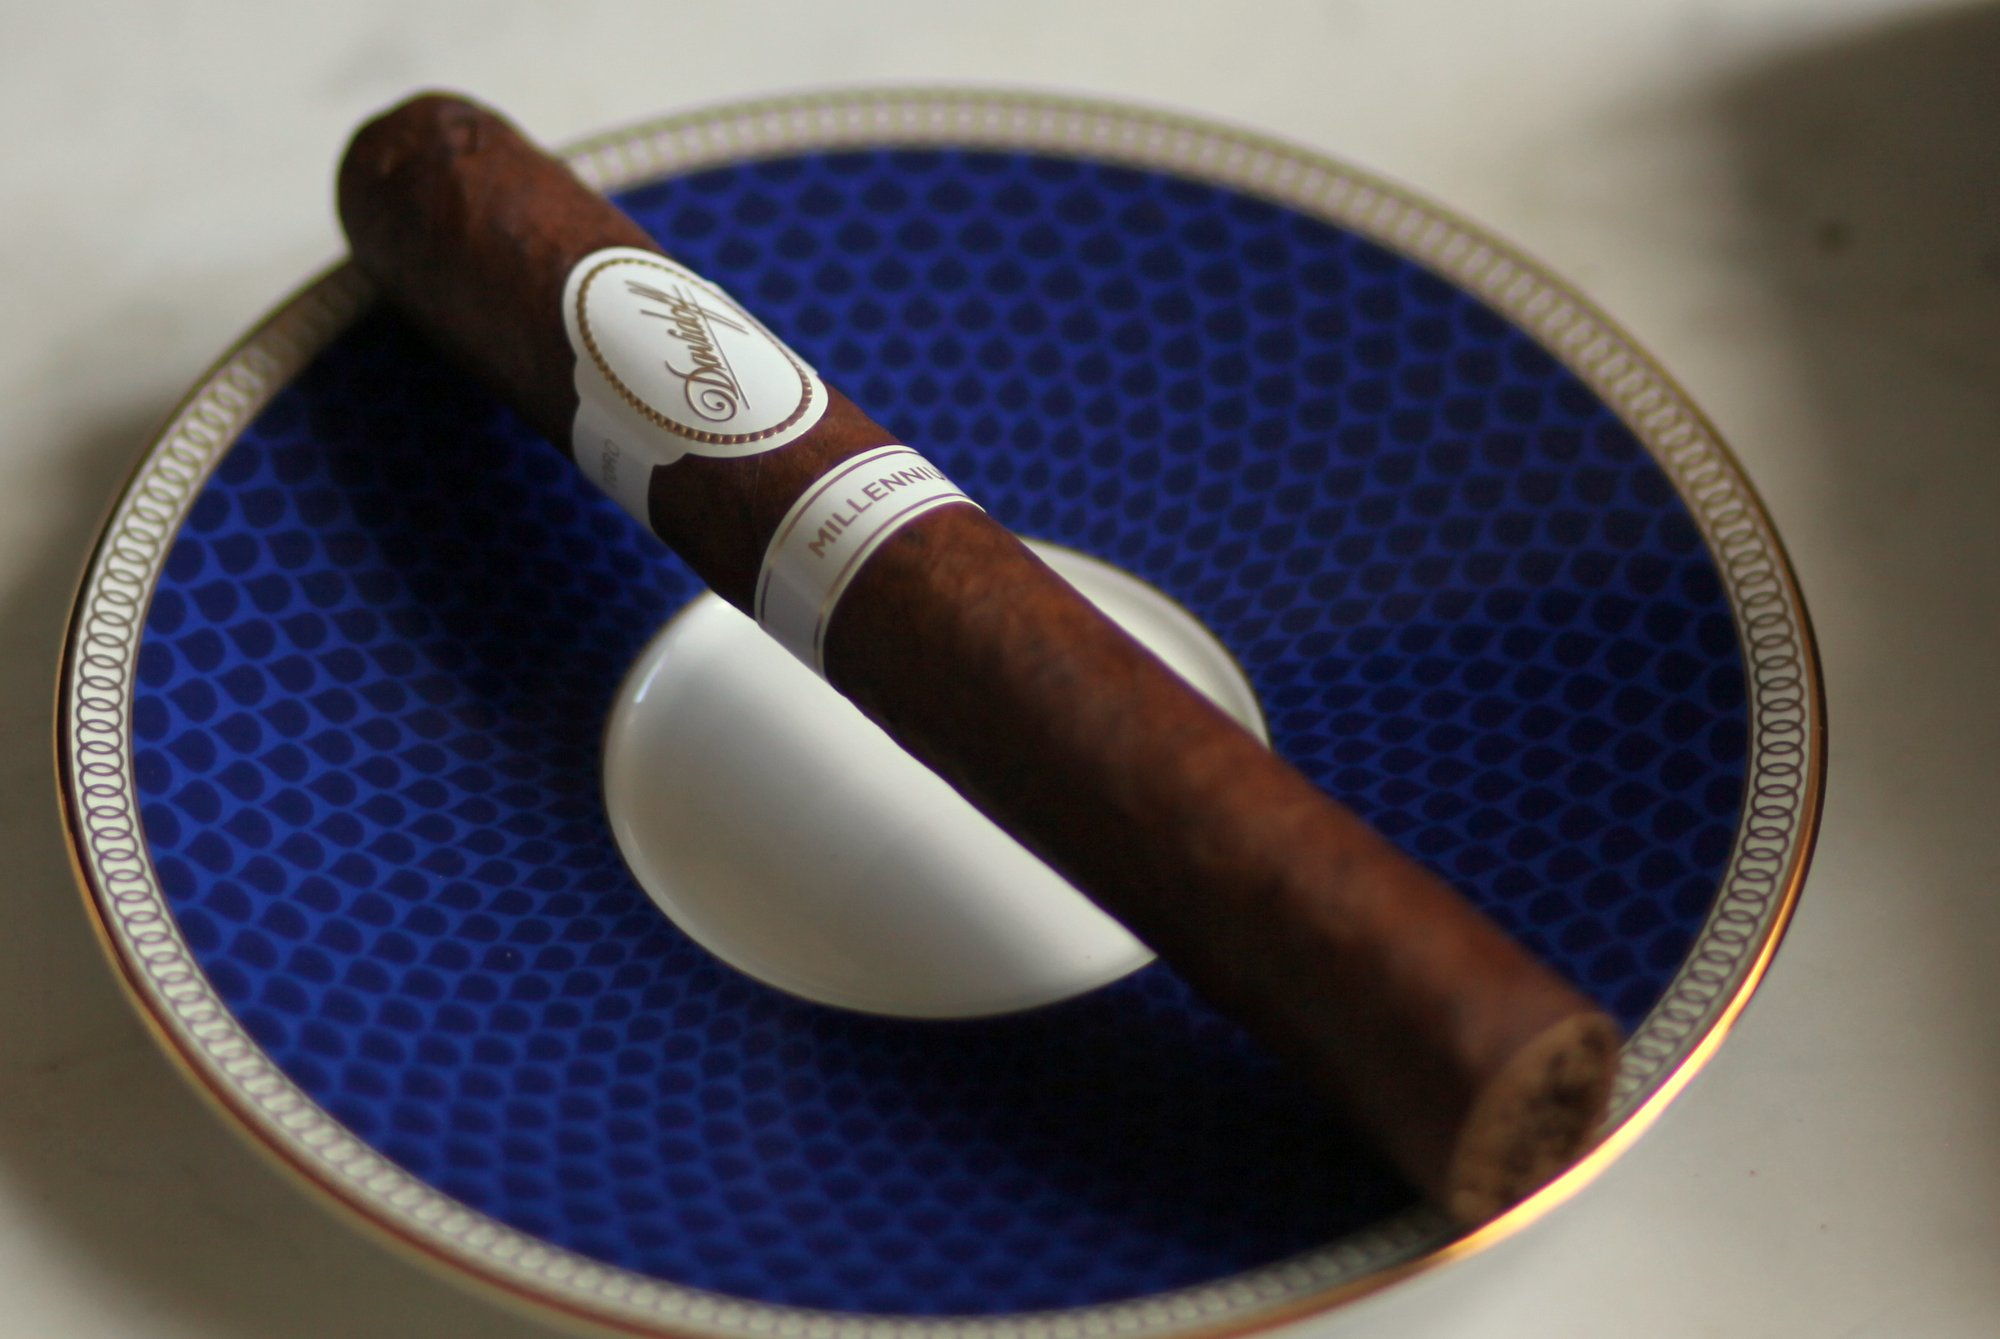 Davidoff Millennium Blend Toro Review Closeup 2